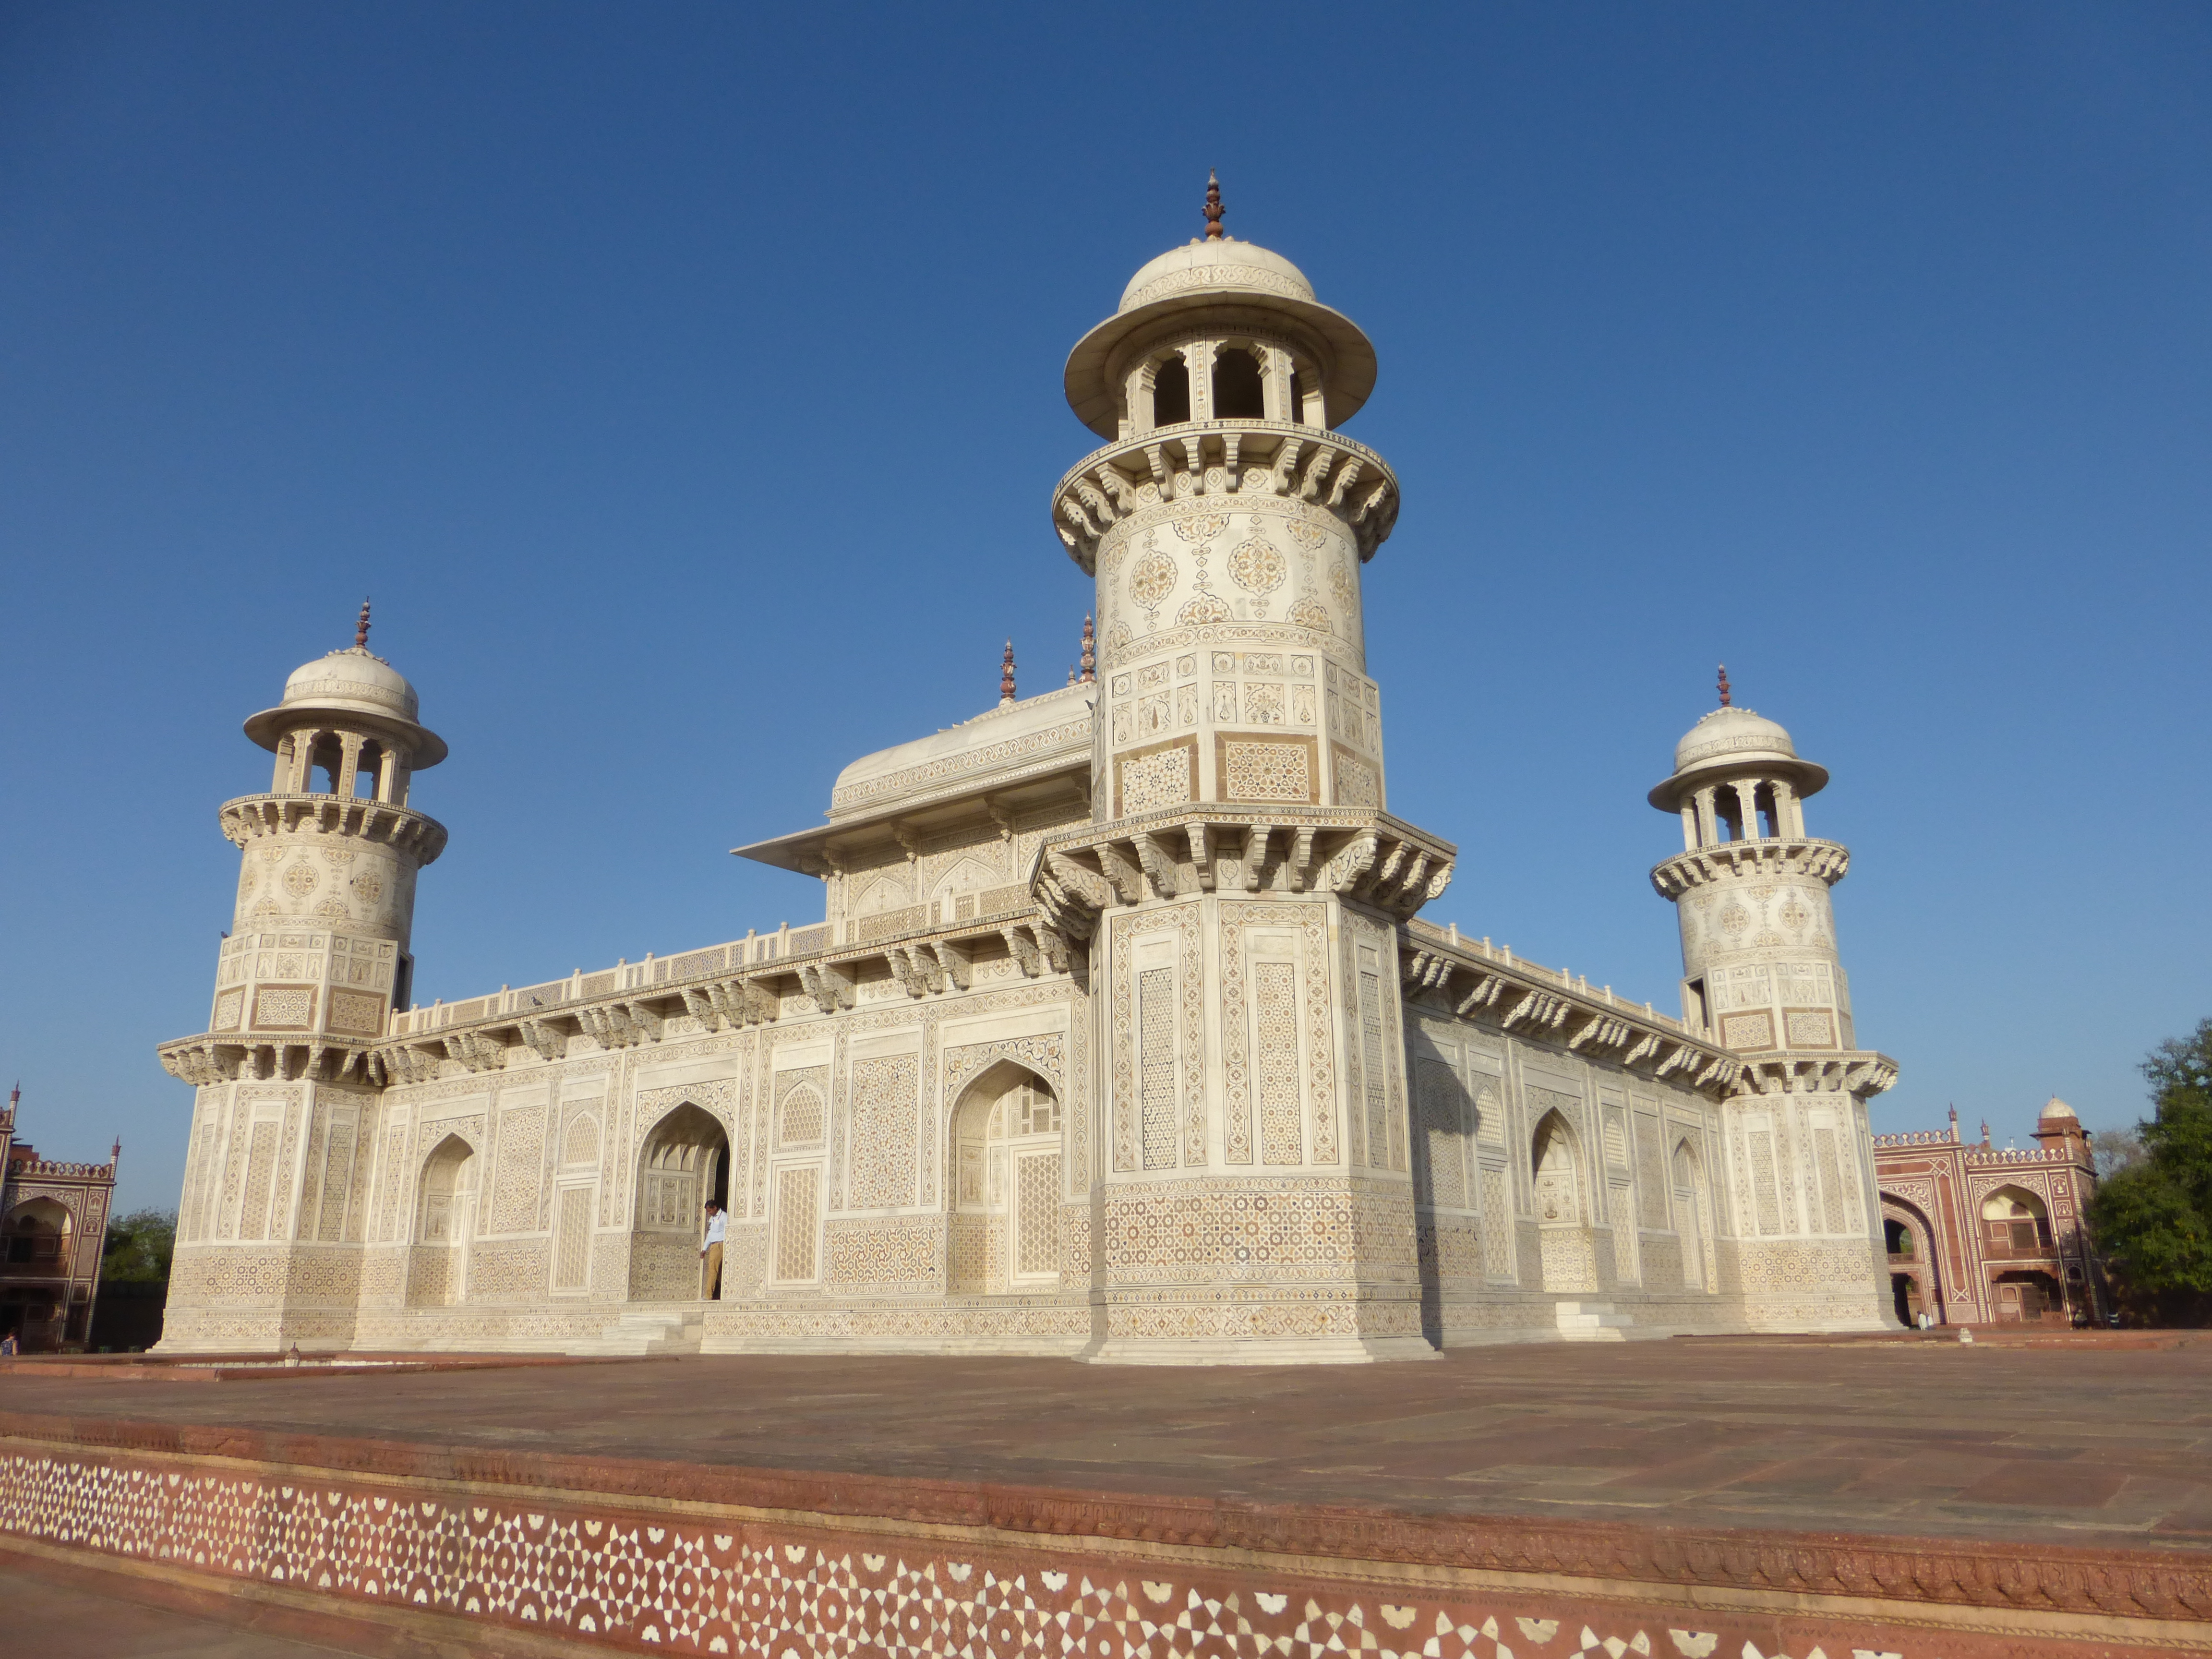 The Tomb of I'timad-ud-Daulah, also known as 'Baby Taj'